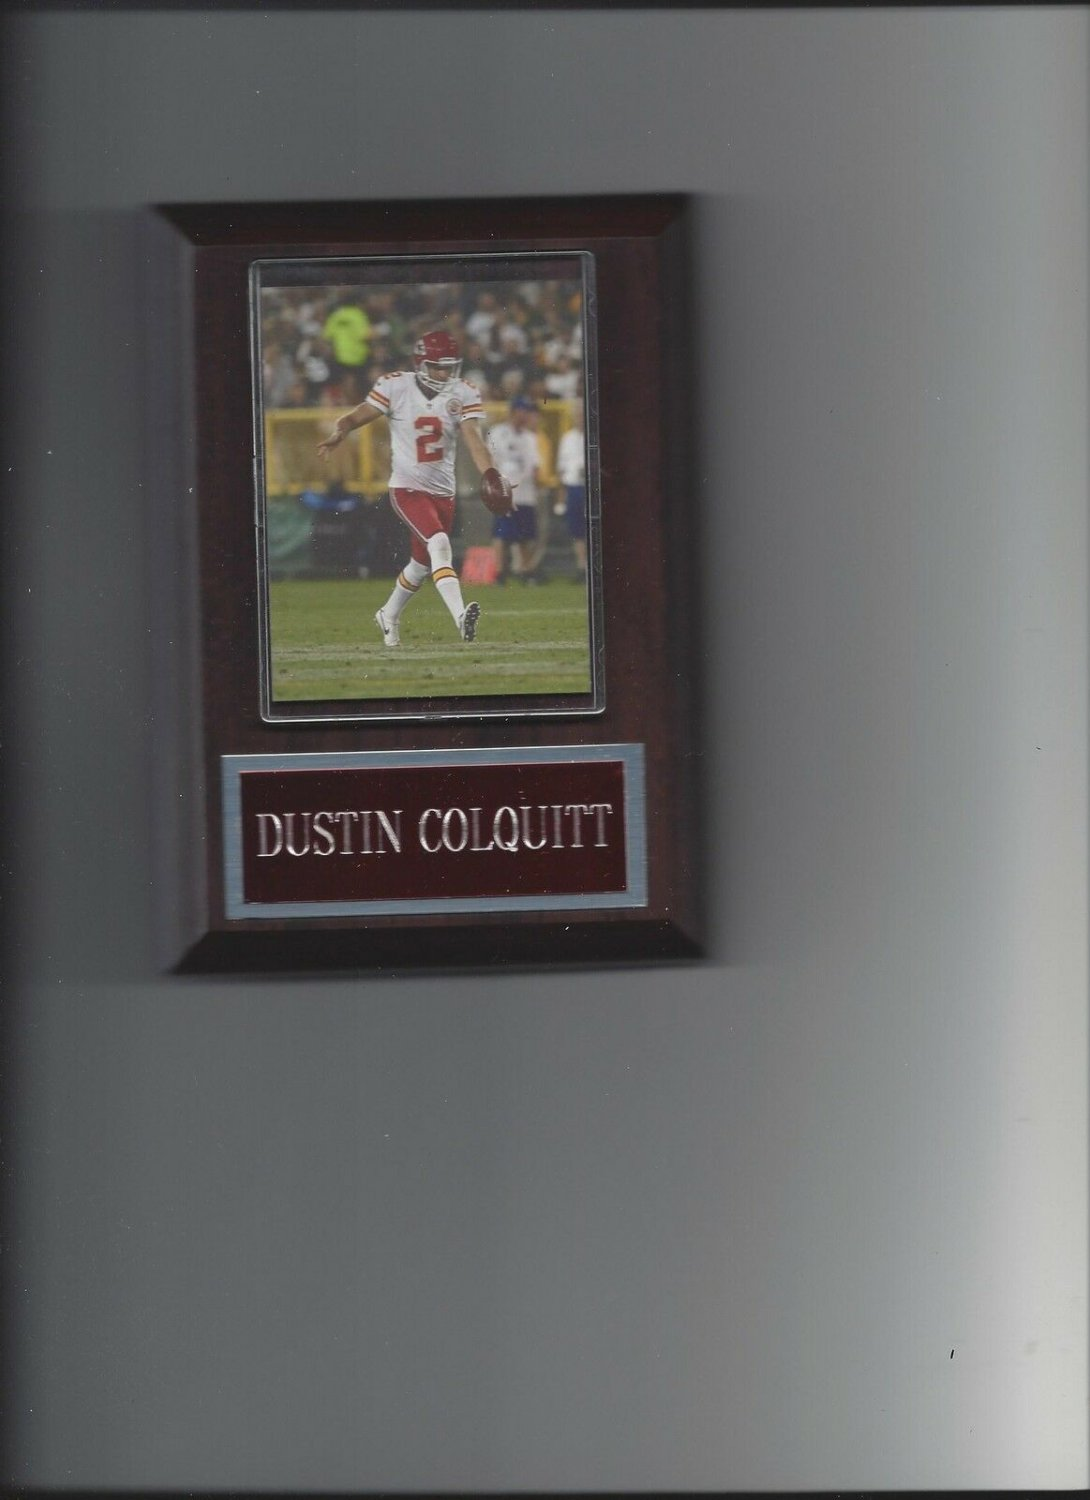 DUSTIN COLQUITT PLAQUE KANSAS CITY CHIEFS KC FOOTBALL NFL